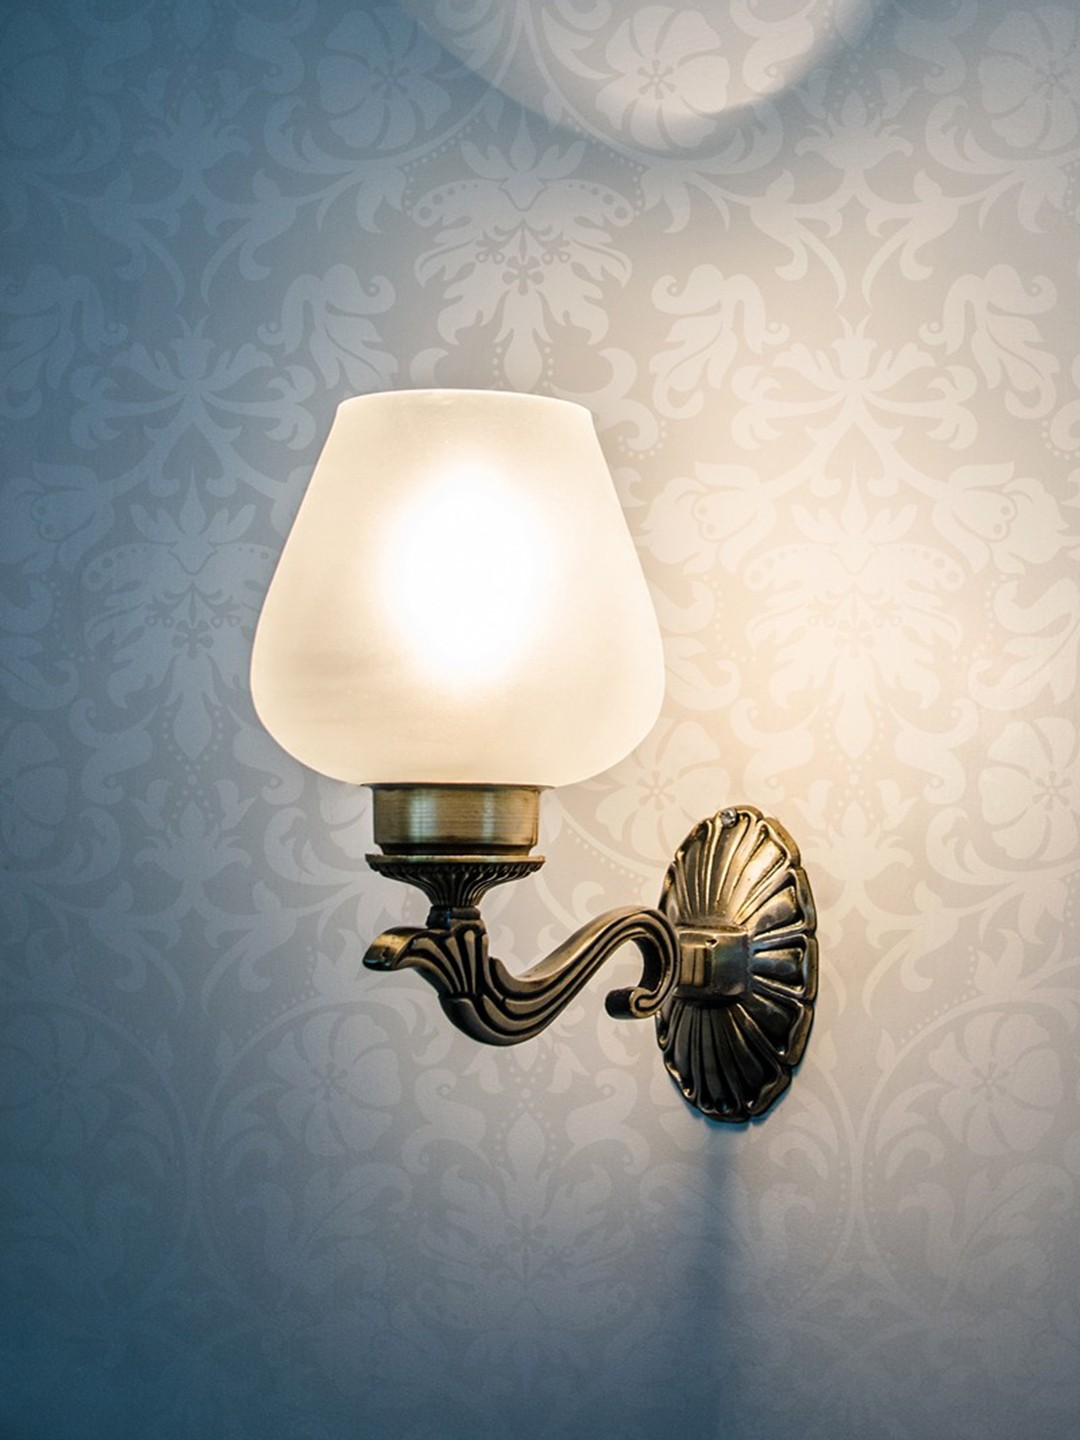 Allure Small Single Wall Sconce